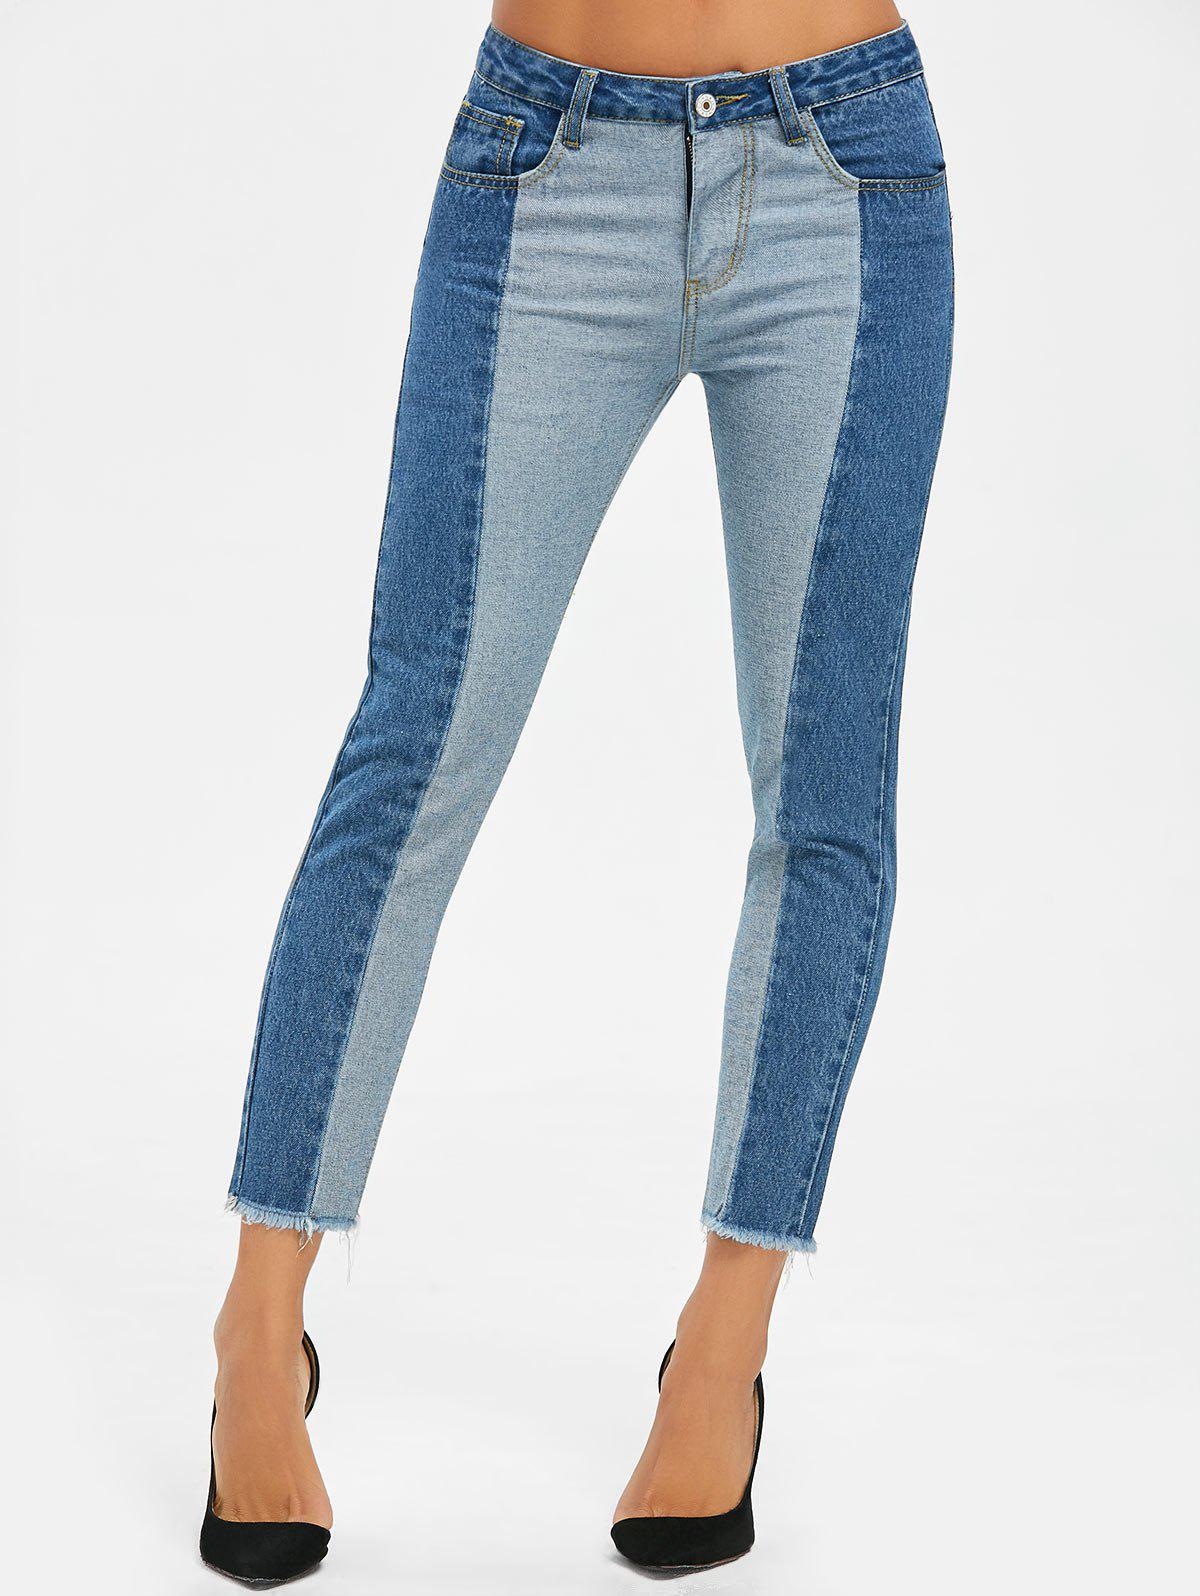 Two Tone Raw Edge Crop Jeans paddington bear